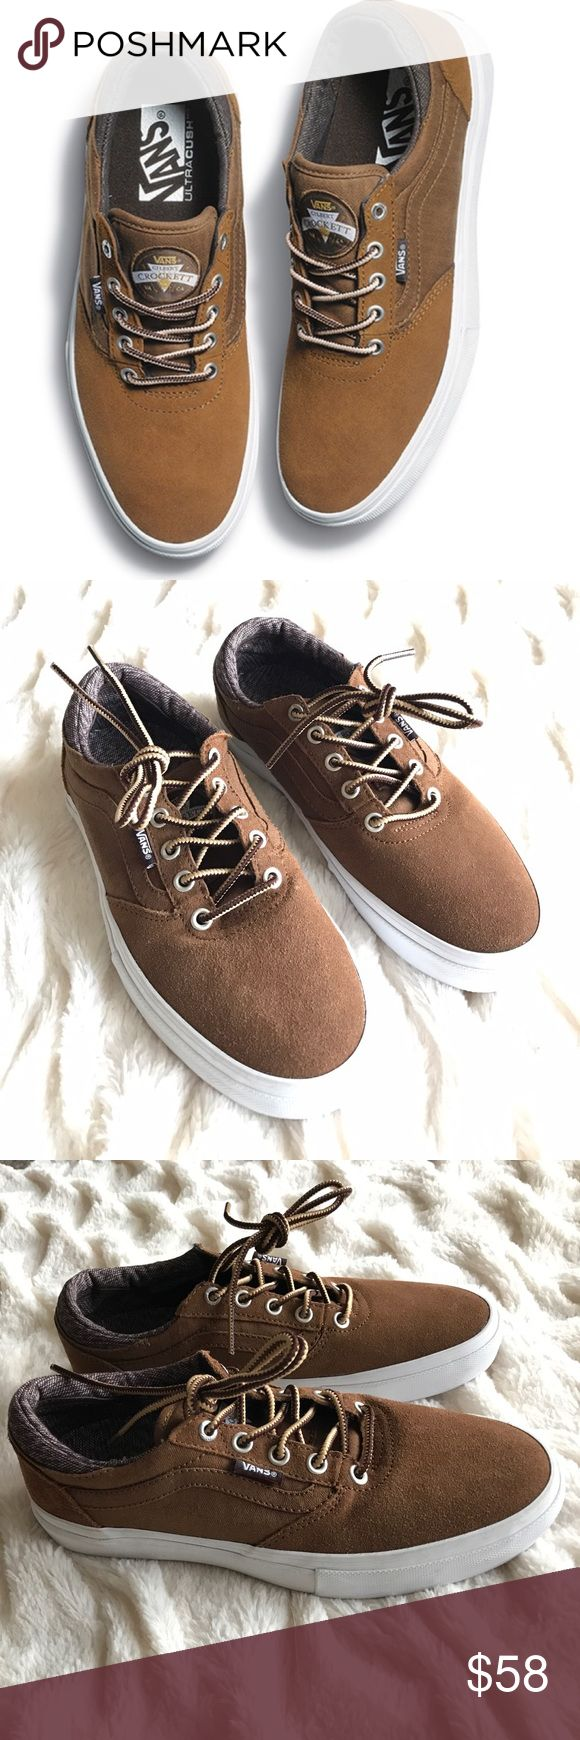 💥NEW💥VANS GILBERT CROCKET TPR 🚨READ🚨READ🚨READ🚨 👉ALL QUESTIONS AND REASONABLE OFFERS ARE WELCOME💖 👉PLEASE BE MINDFUL OF 20% POSH FEE BEFORE MAKING AN OFFER  💯BRANDNEW  ➡️SIZE 6.5 MENS --- 7.5 WOMENS ➡️WITH BOX AND EXTRA SHOE LACES  ❌❌❌TRADE/SWAP ❌❌❌LOW BALLING!  Thank you!😊 Happy shopping!💸💰🎉 Vans Shoes Sneakers